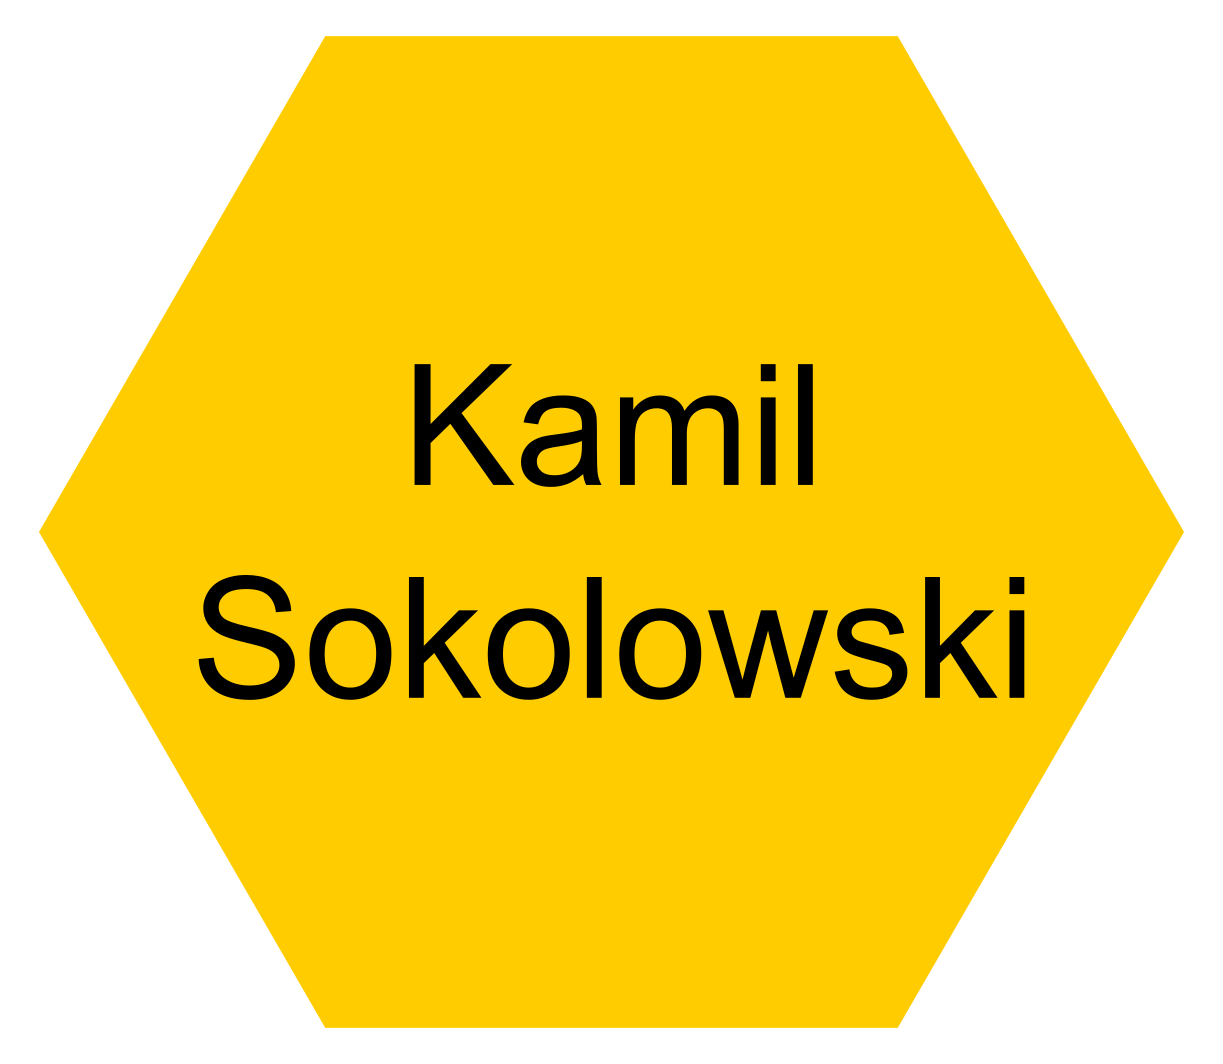 Dr. Kamil Sokolowski (University of Cambridge: Post-Doctoral Researcher) - Click this icon to reveal their contact details.